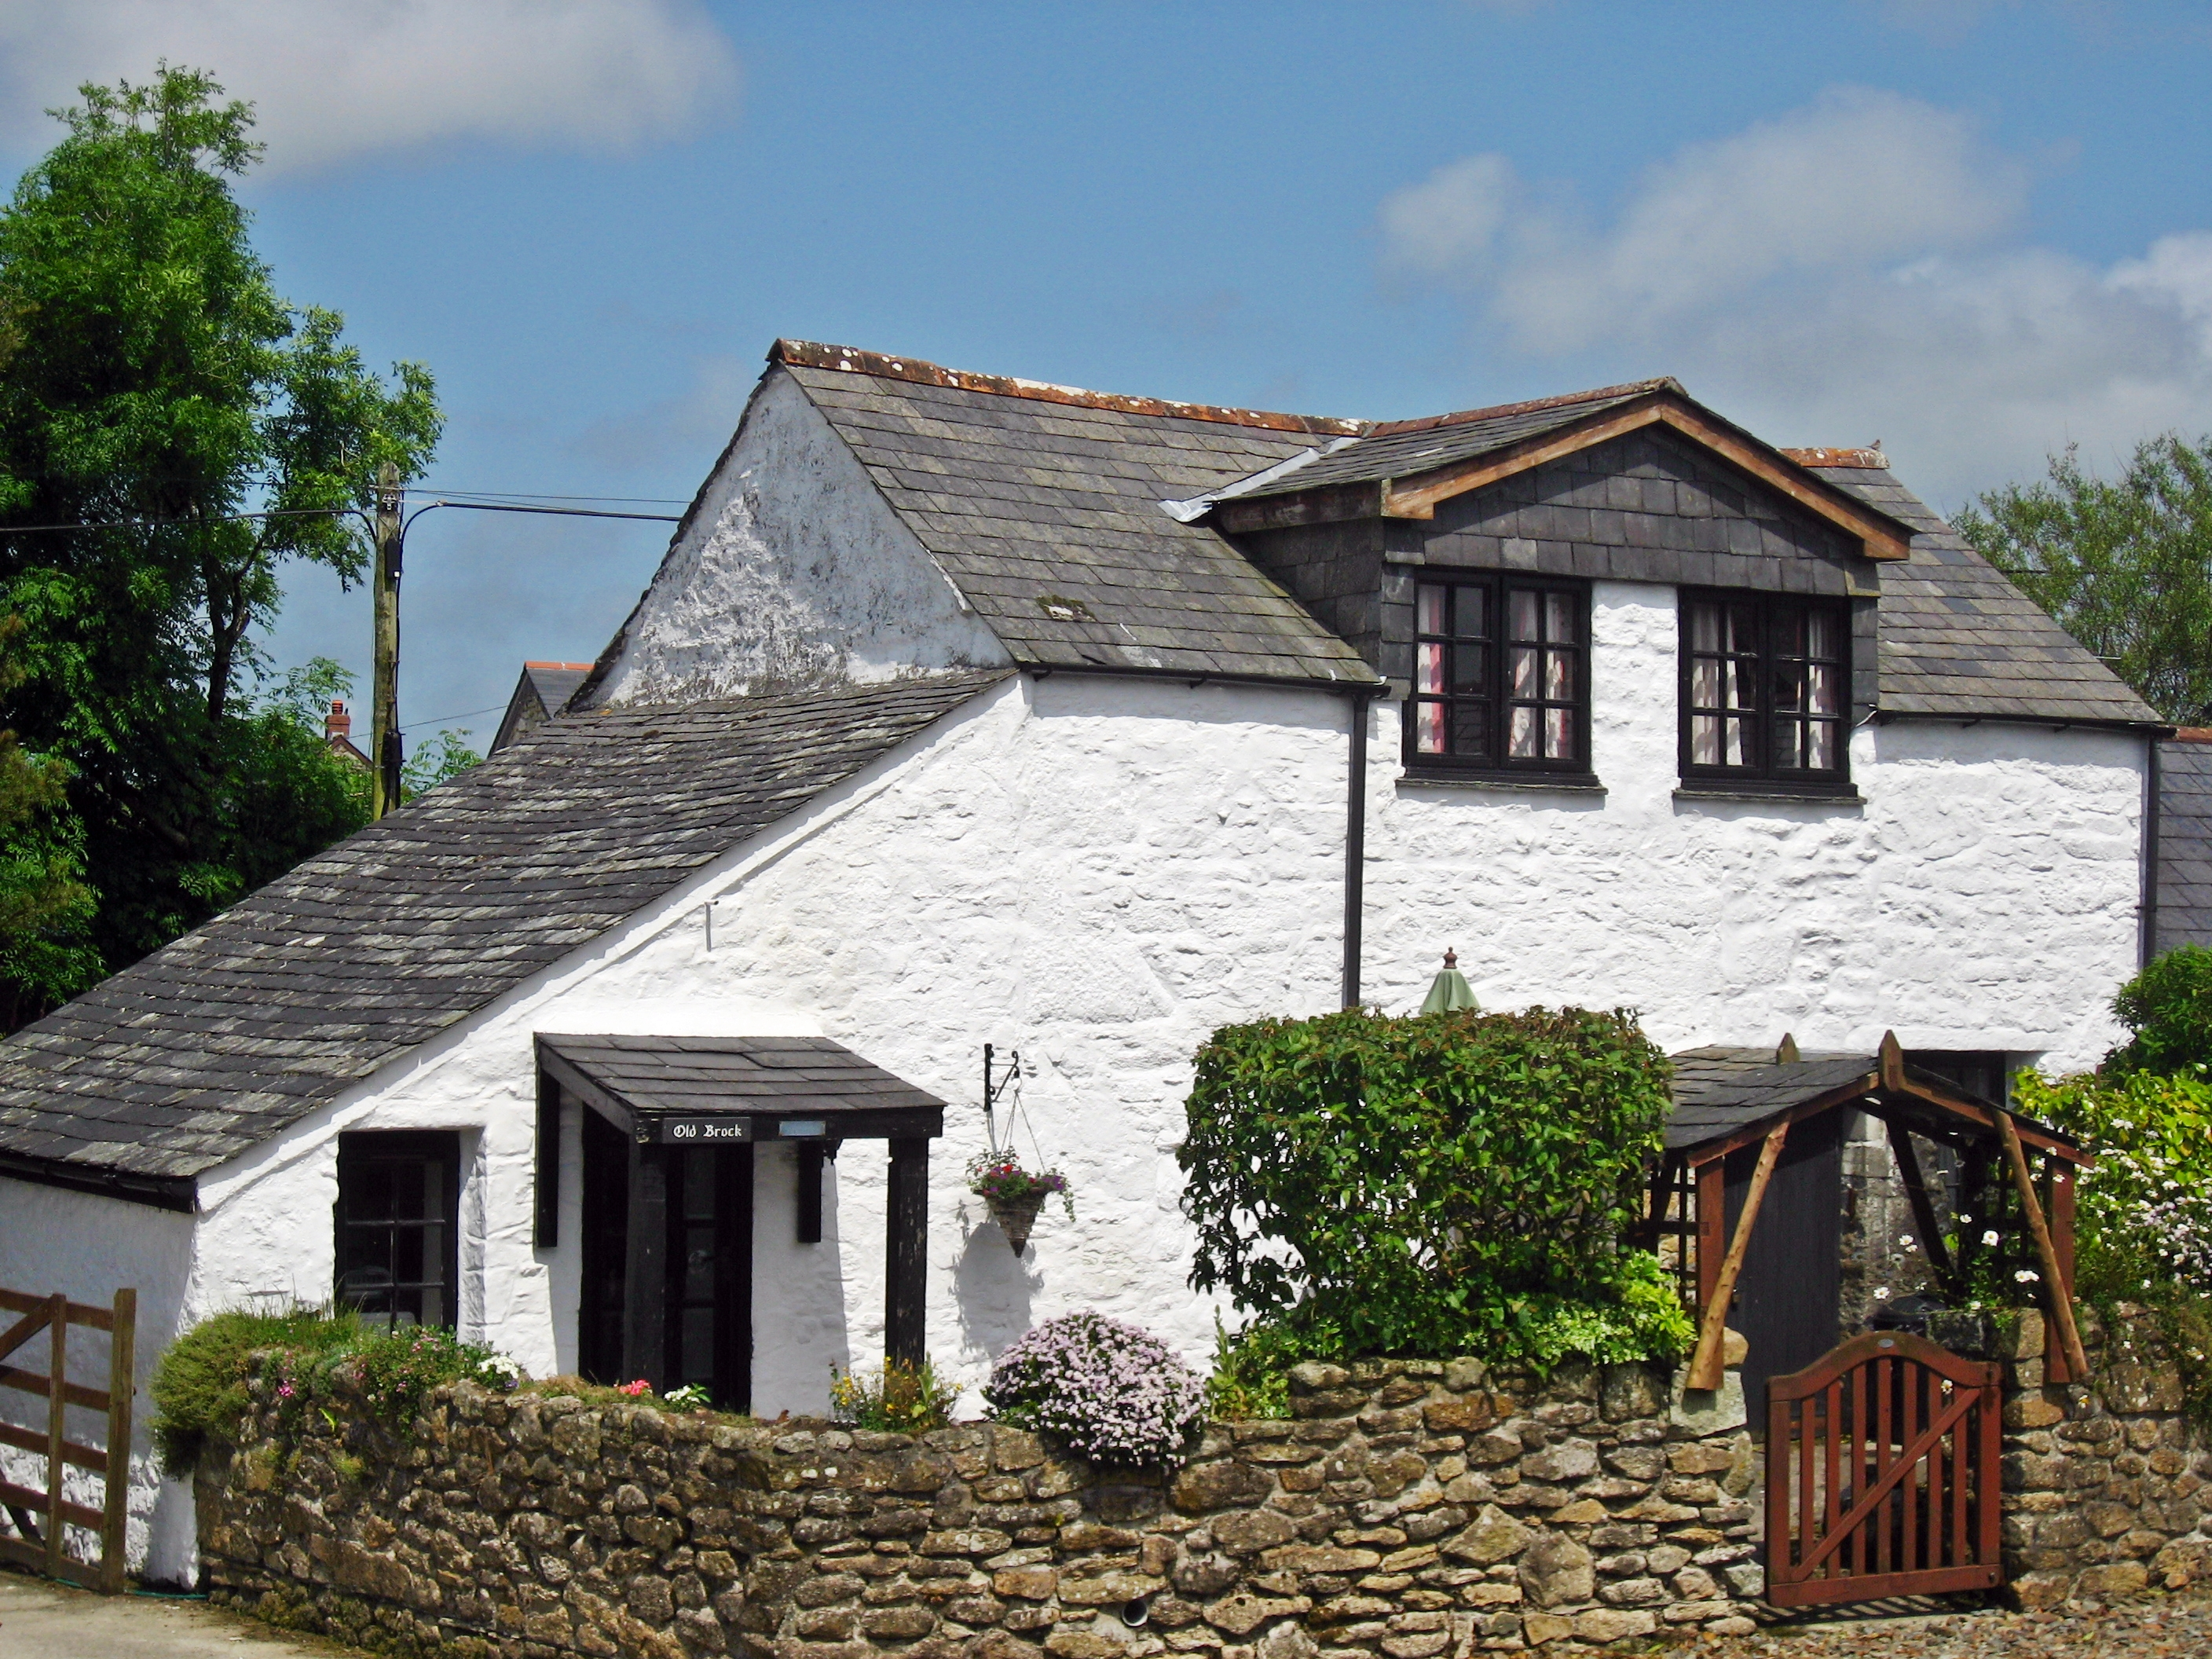 Hallagenna Farmhouse & Cottages